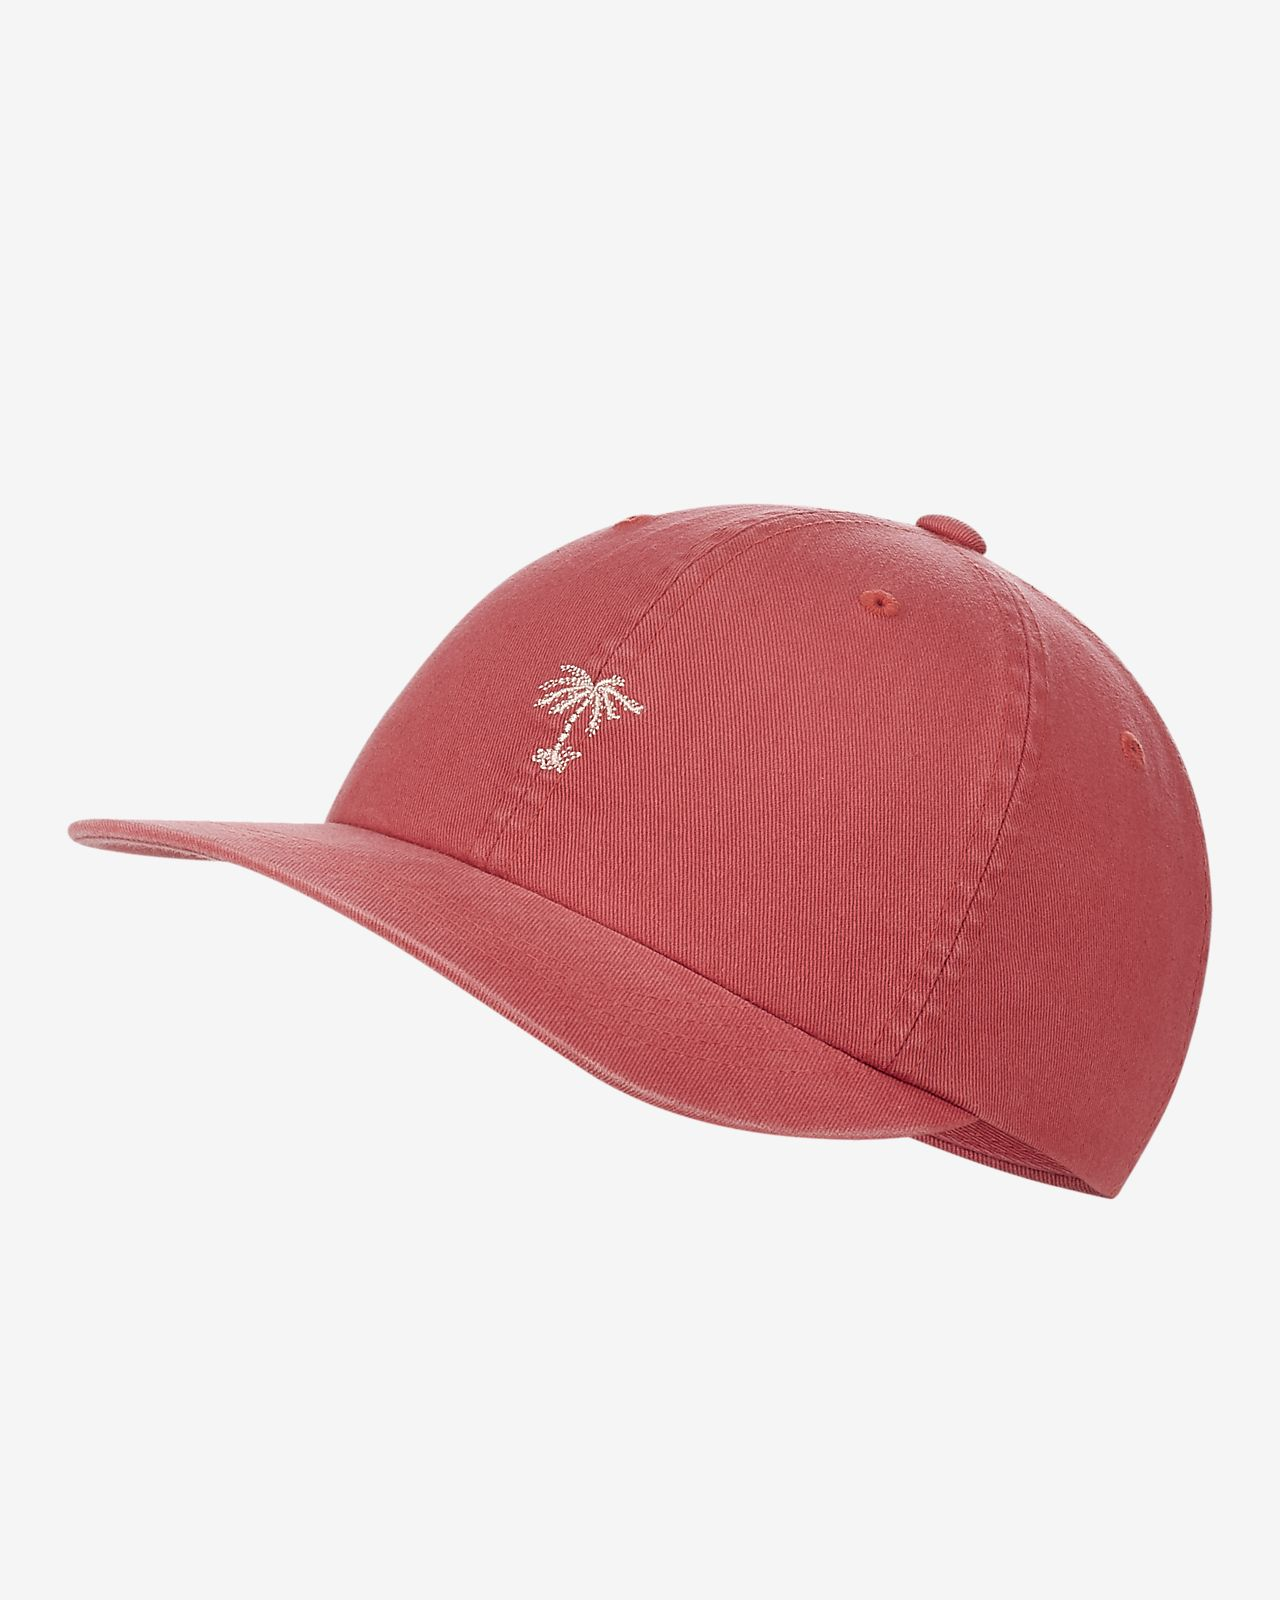 eaaf9492 Hurley Fronds Women's Dad Hat. Nike.com